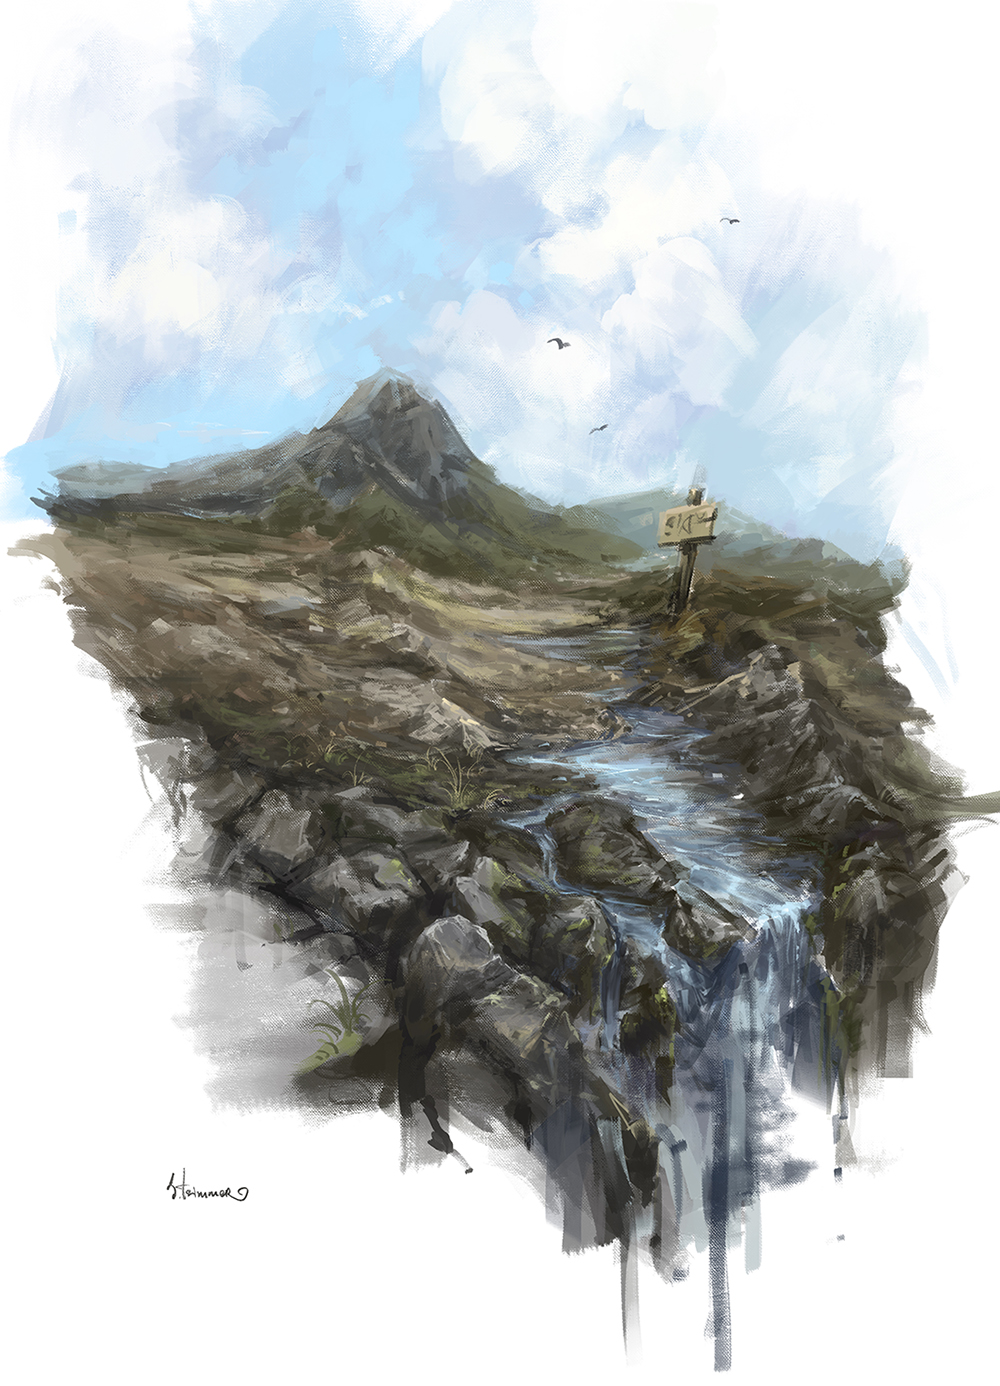 landscape sketch16 by TsimmerS